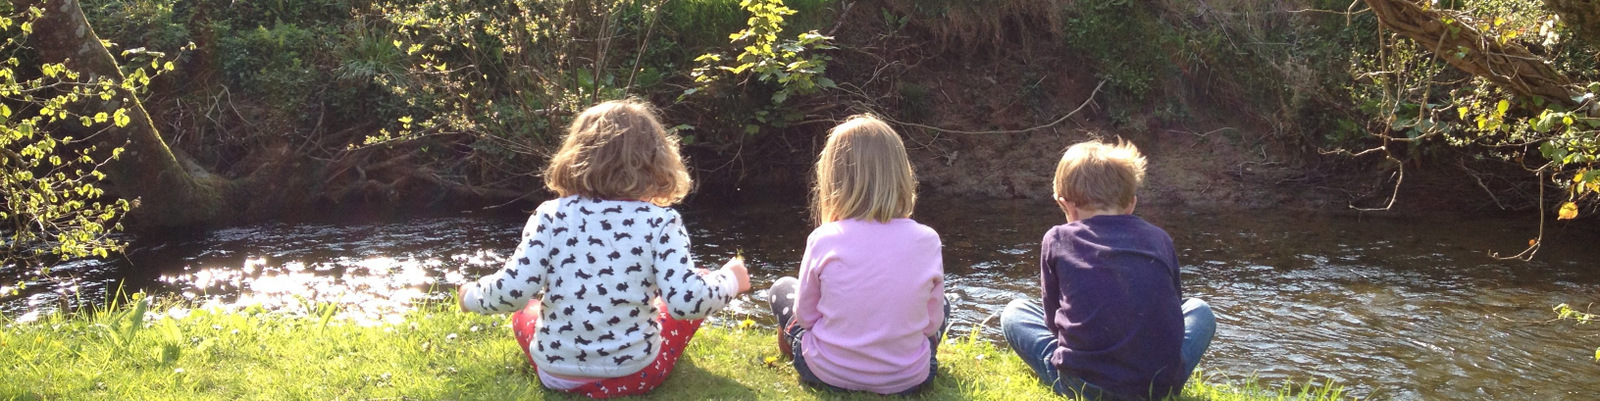 Kids by the river